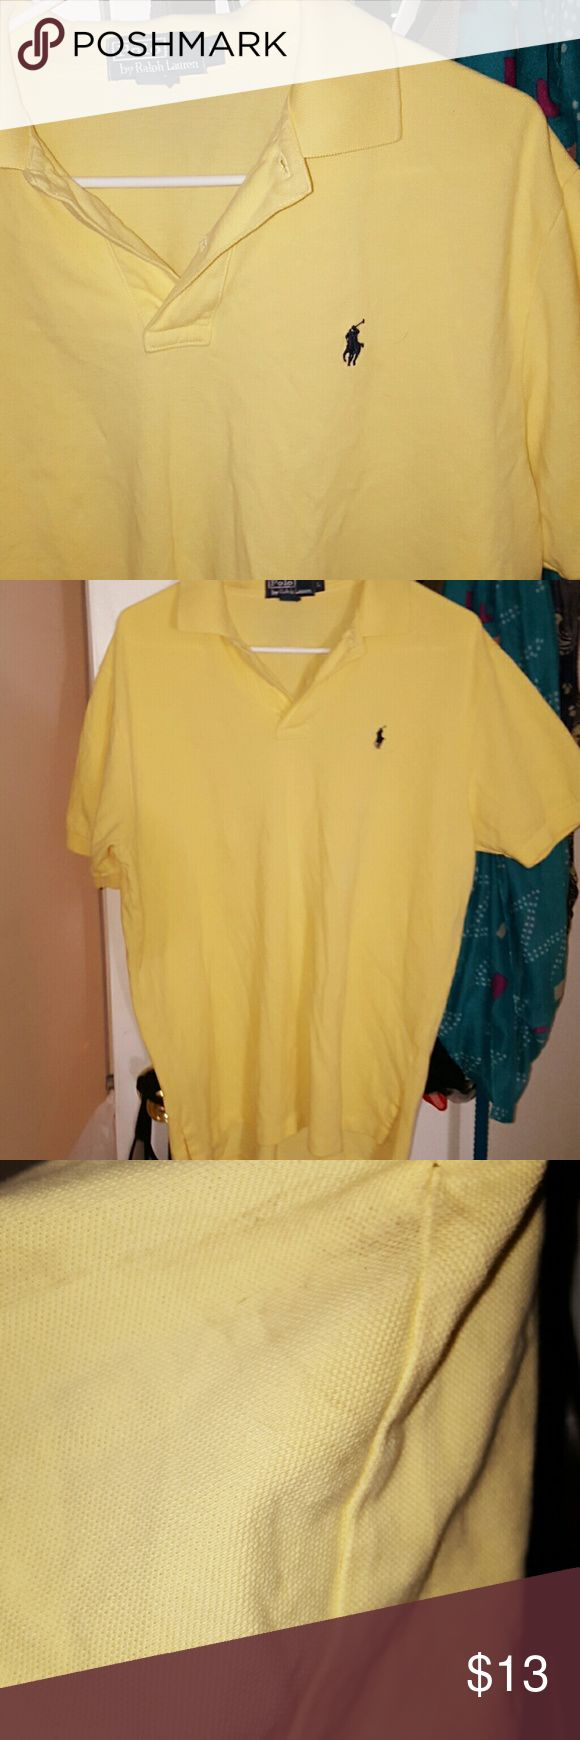 SALE!! Ralph Lauren Polo Gently used and in fair condition. There are some marks on the sleeve. I will wash before I ship out to see if they come out. Ralph Lauren Shirts Polos